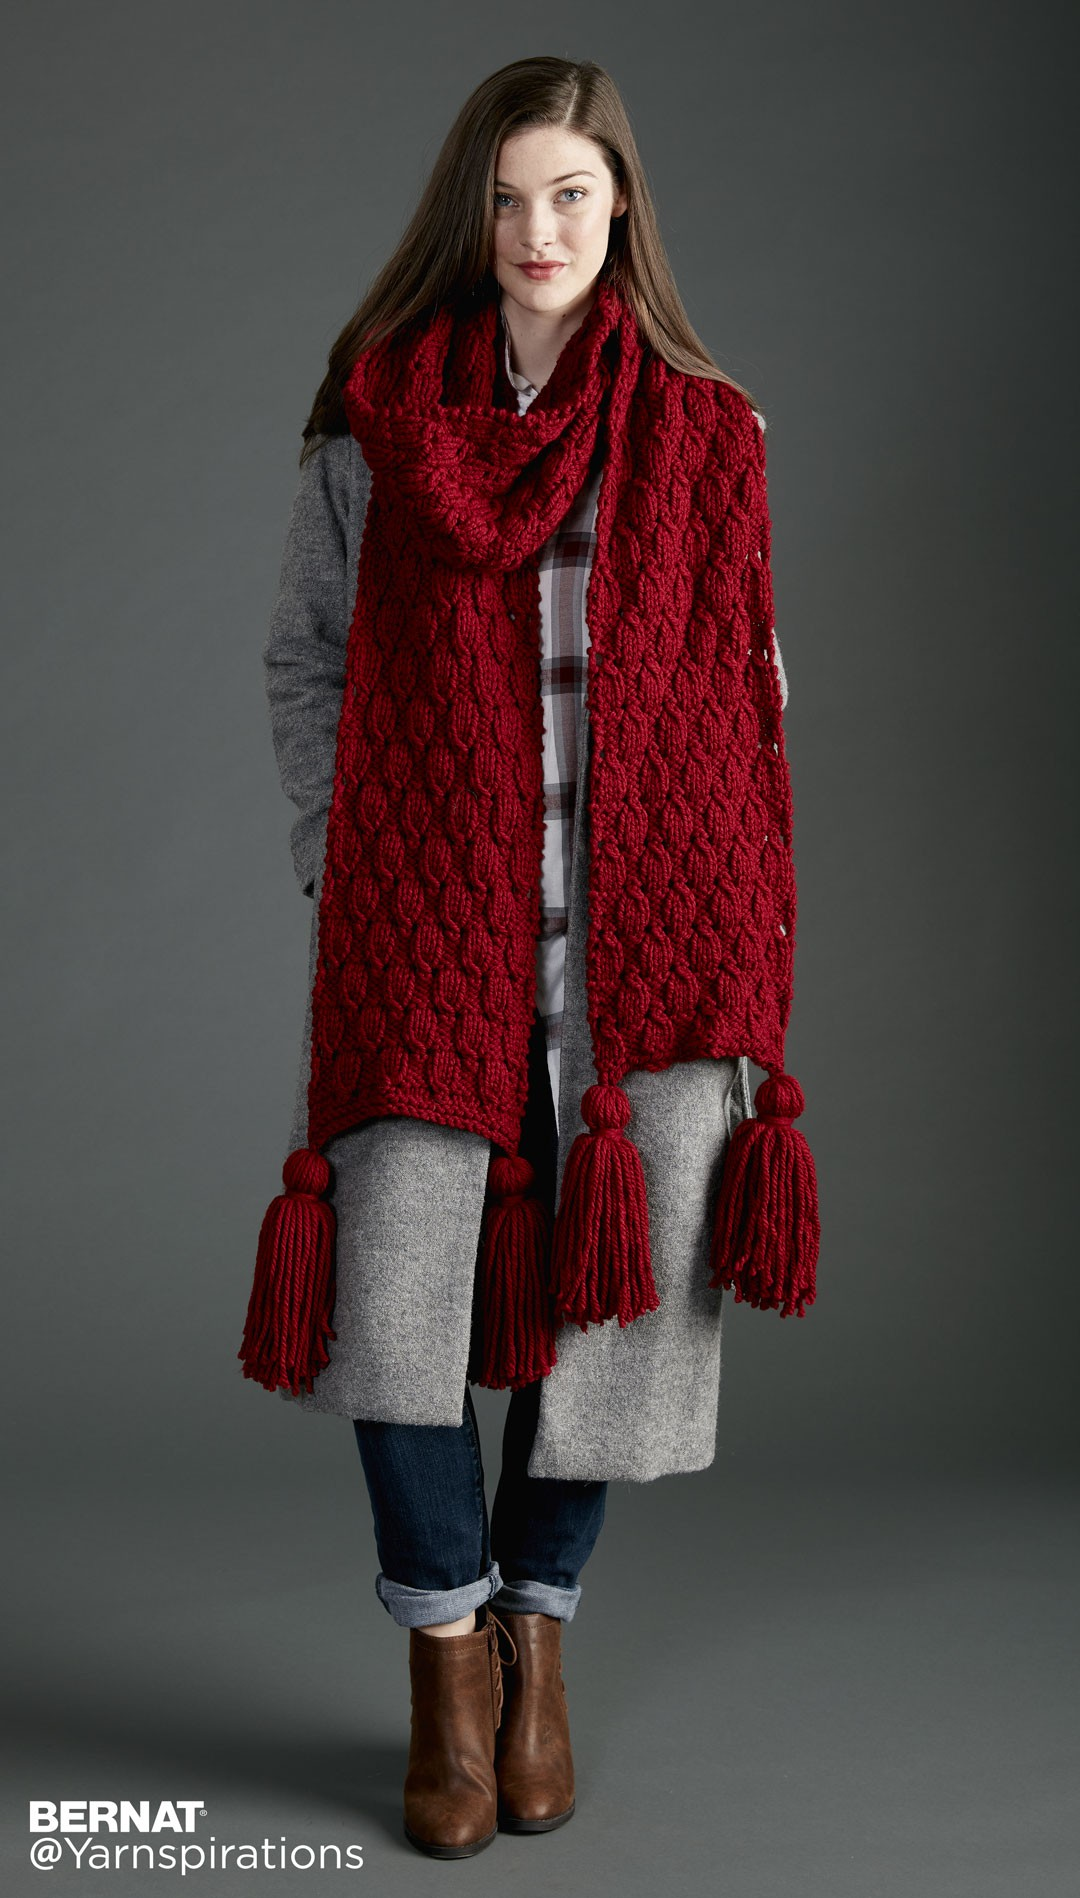 Knitting Pattern Big Scarf : Bernat Make It Big Knit Super Scarf, Knit Pattern ...